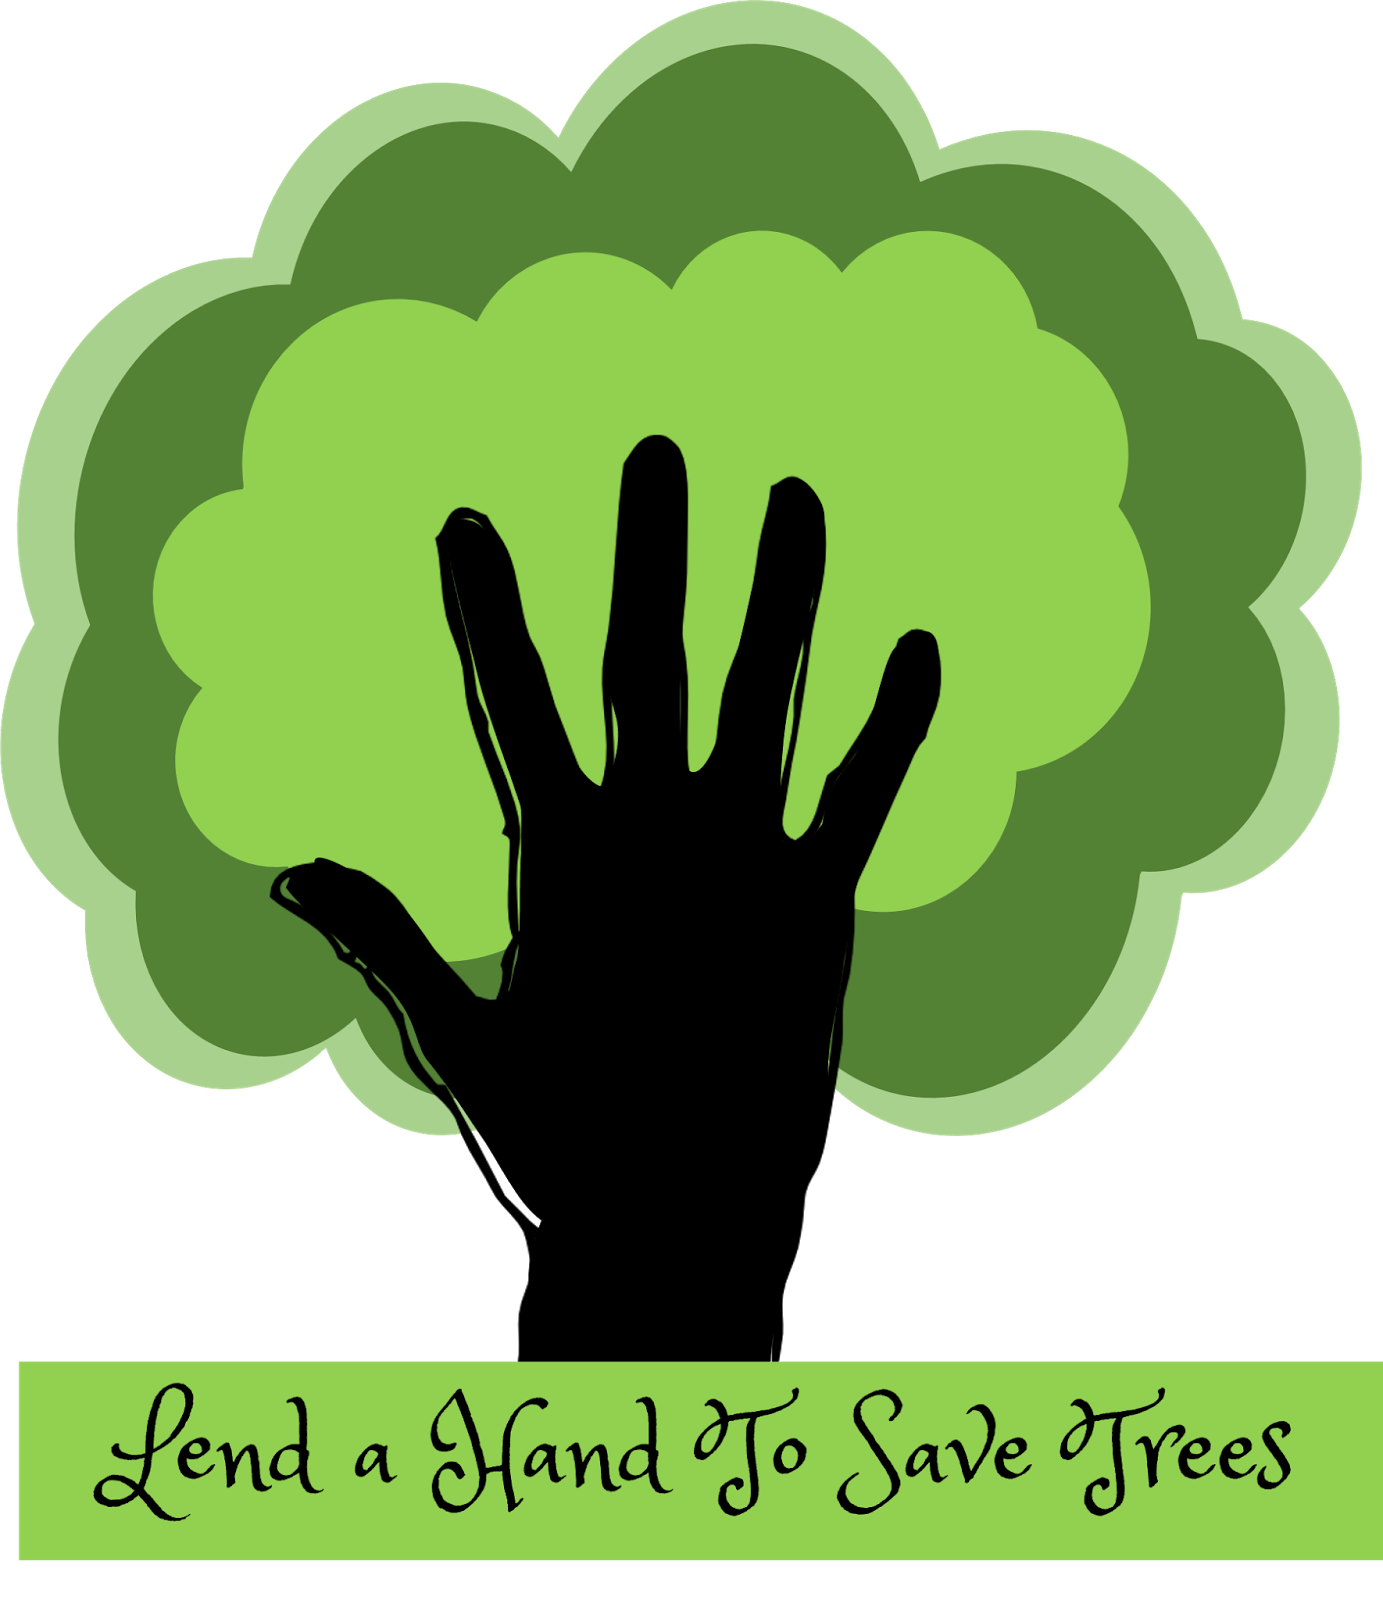 Save Trees Slogan Posters | Free Cliparts | Pinterest | Save trees ... svg royalty free stock